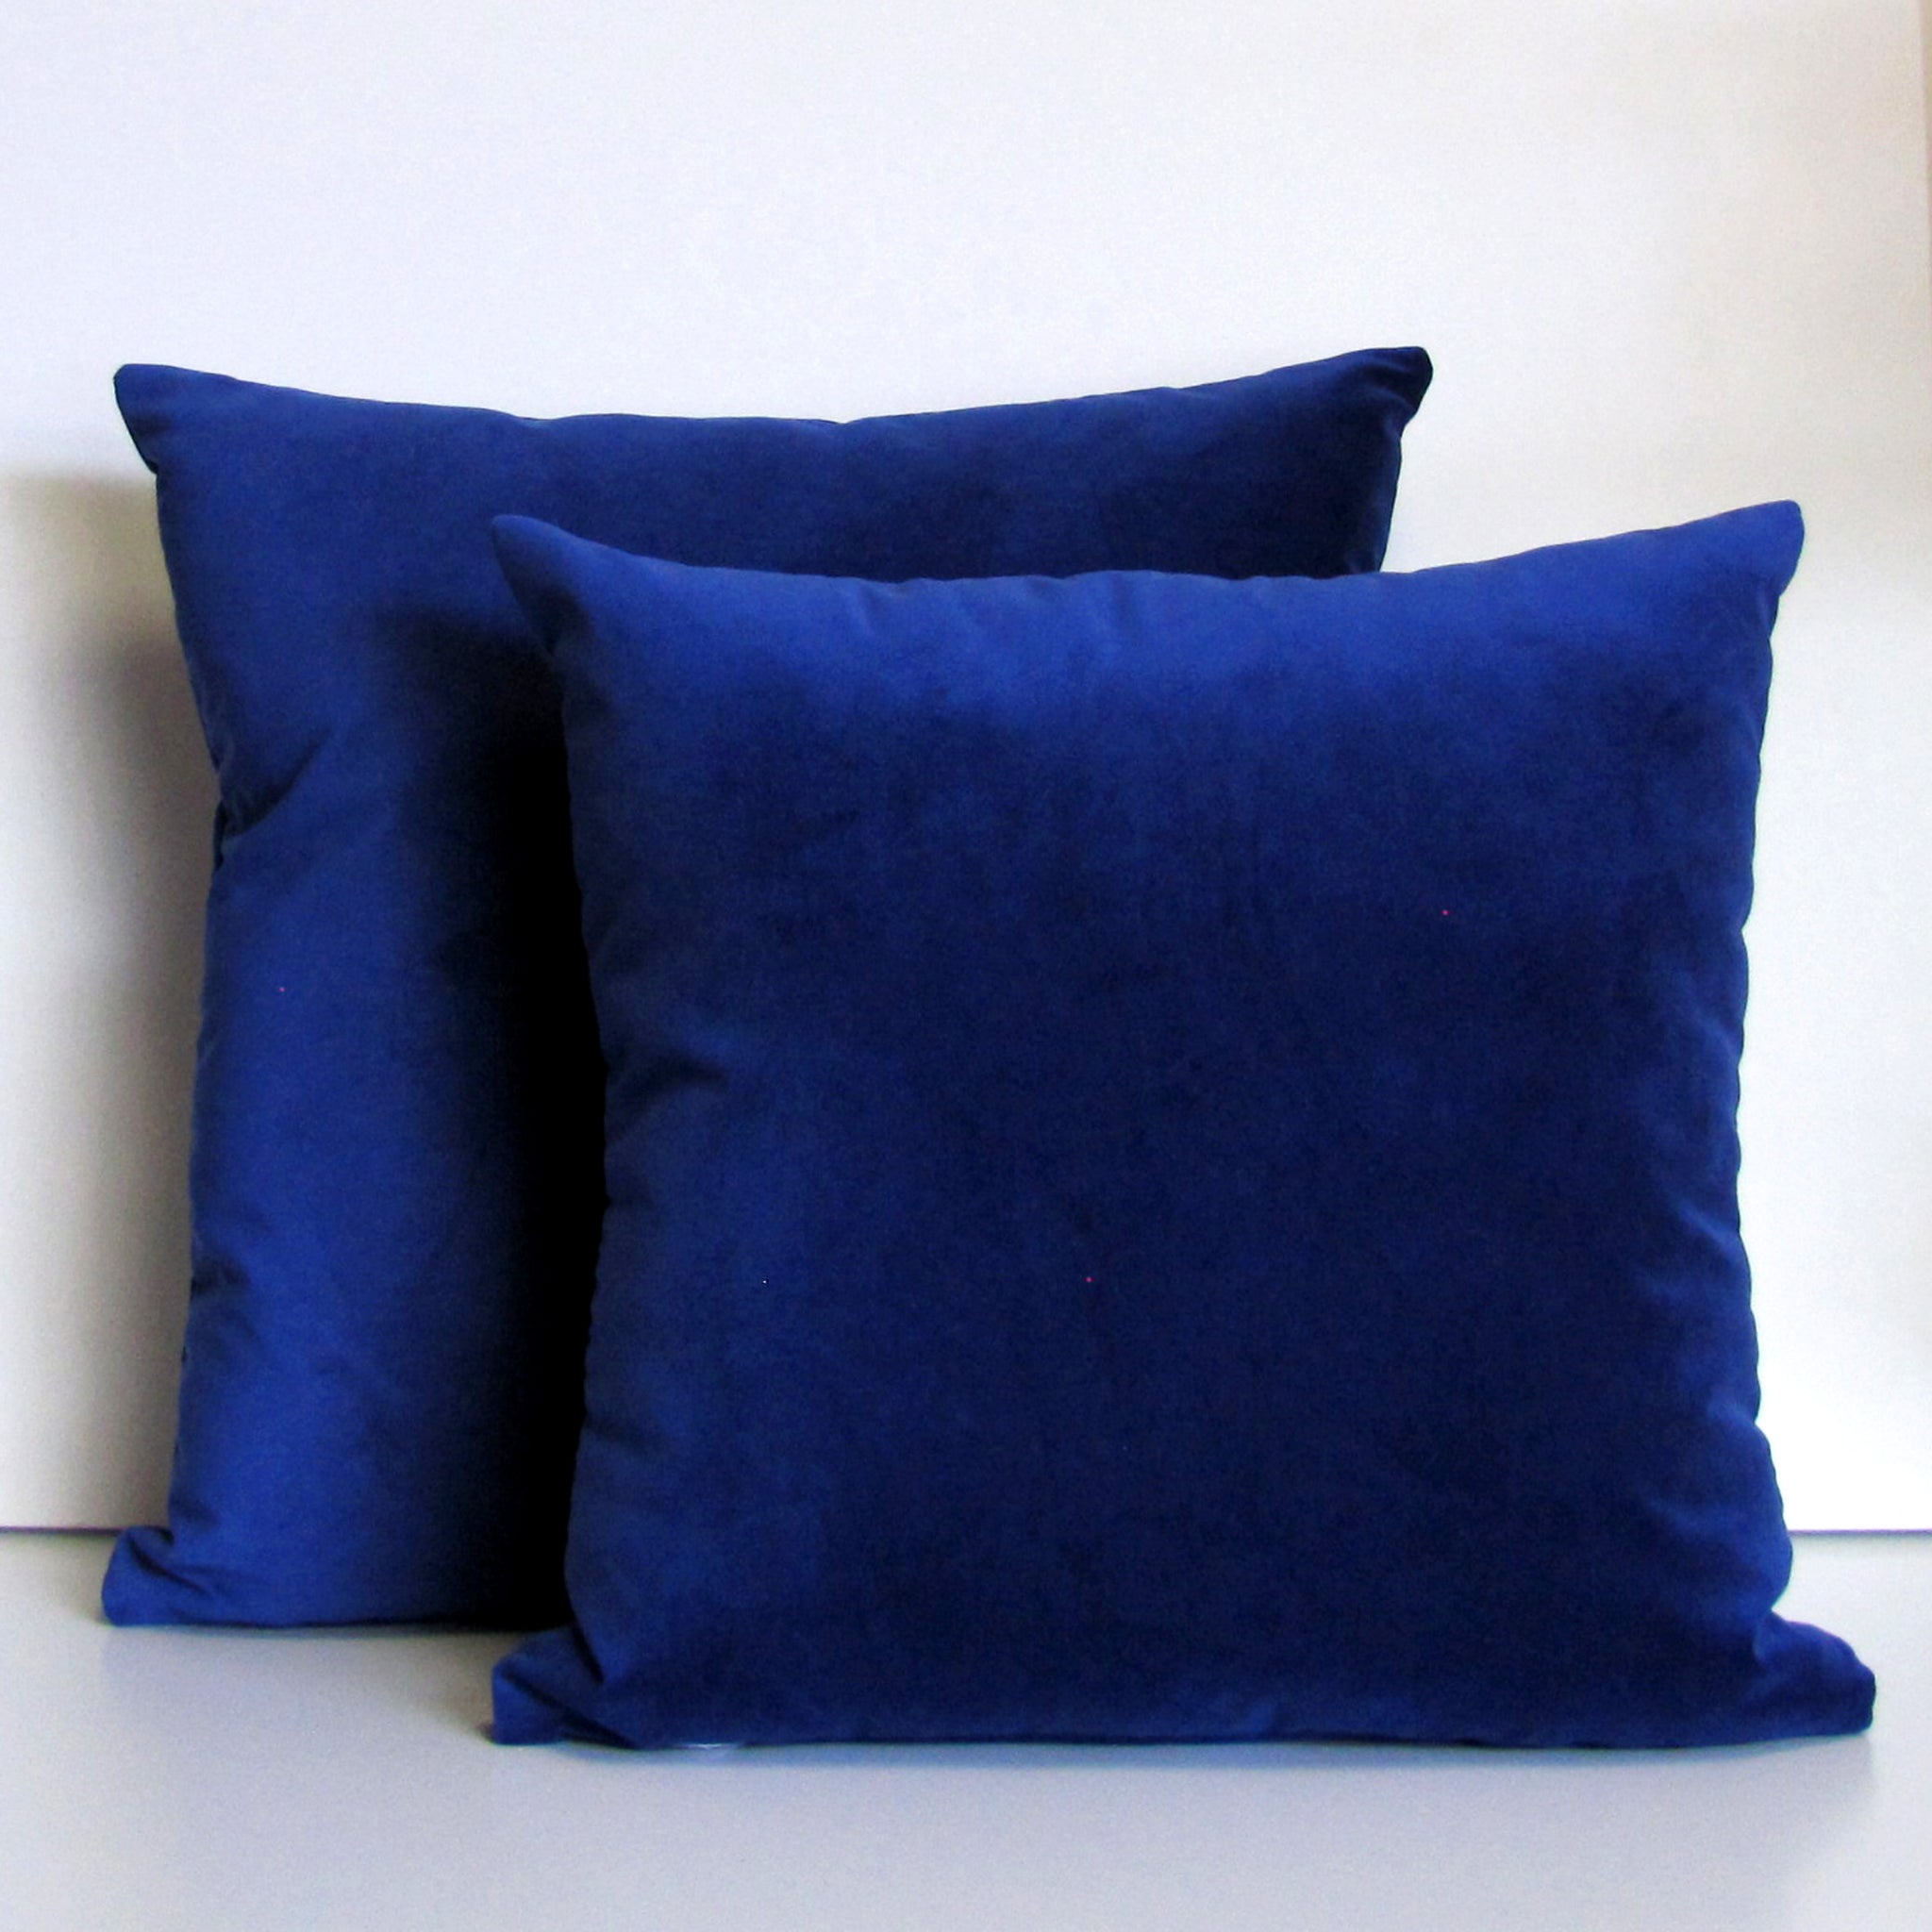 Cobalt blue velvet cushion cover